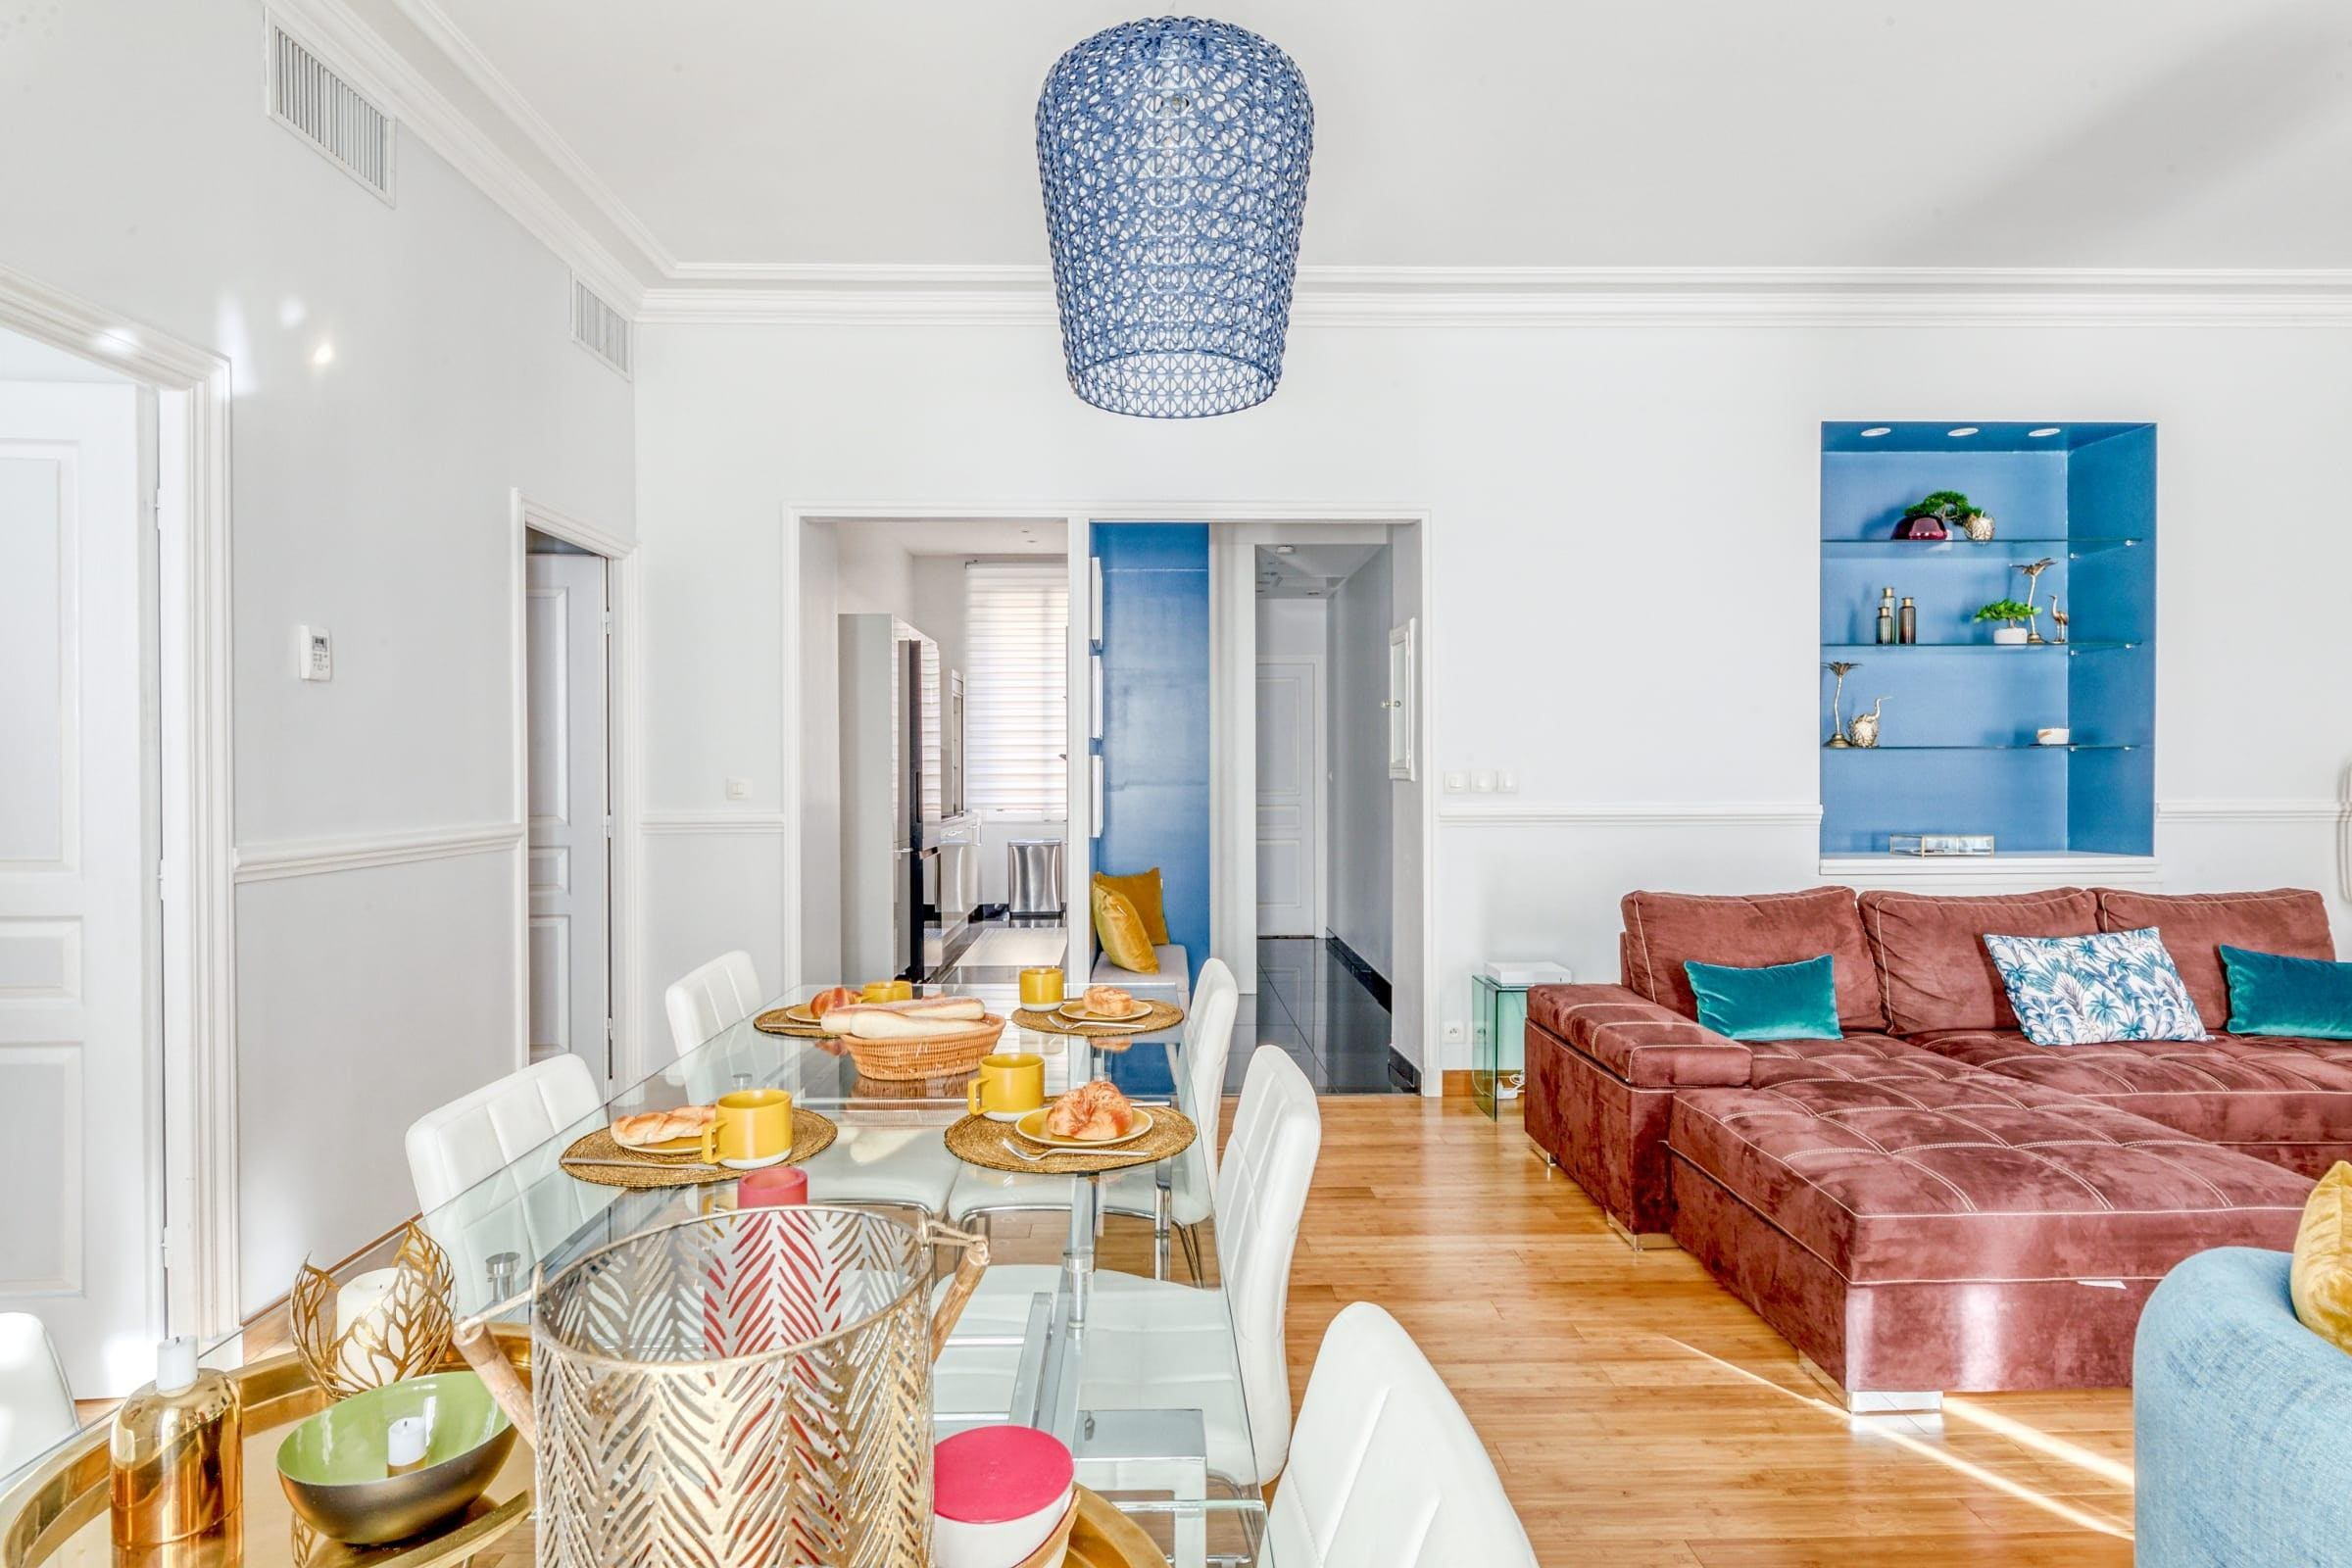 Luxury two bedroom Apartment near Le Vieux and Croisette